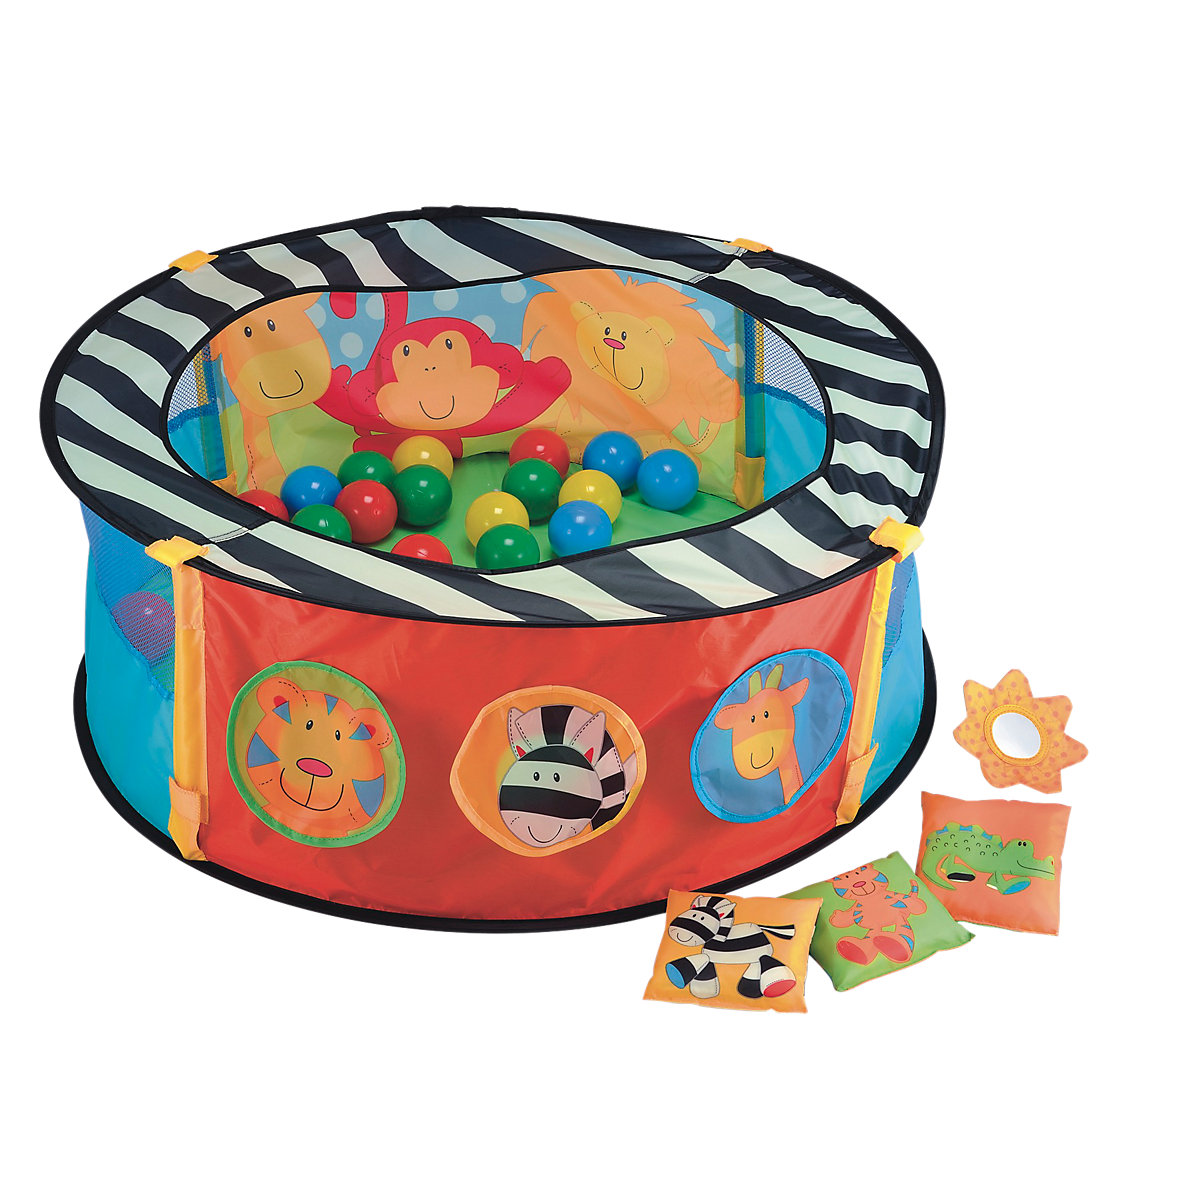 New Baby Toys : New elc boys and girls sensory ball pit baby toy from